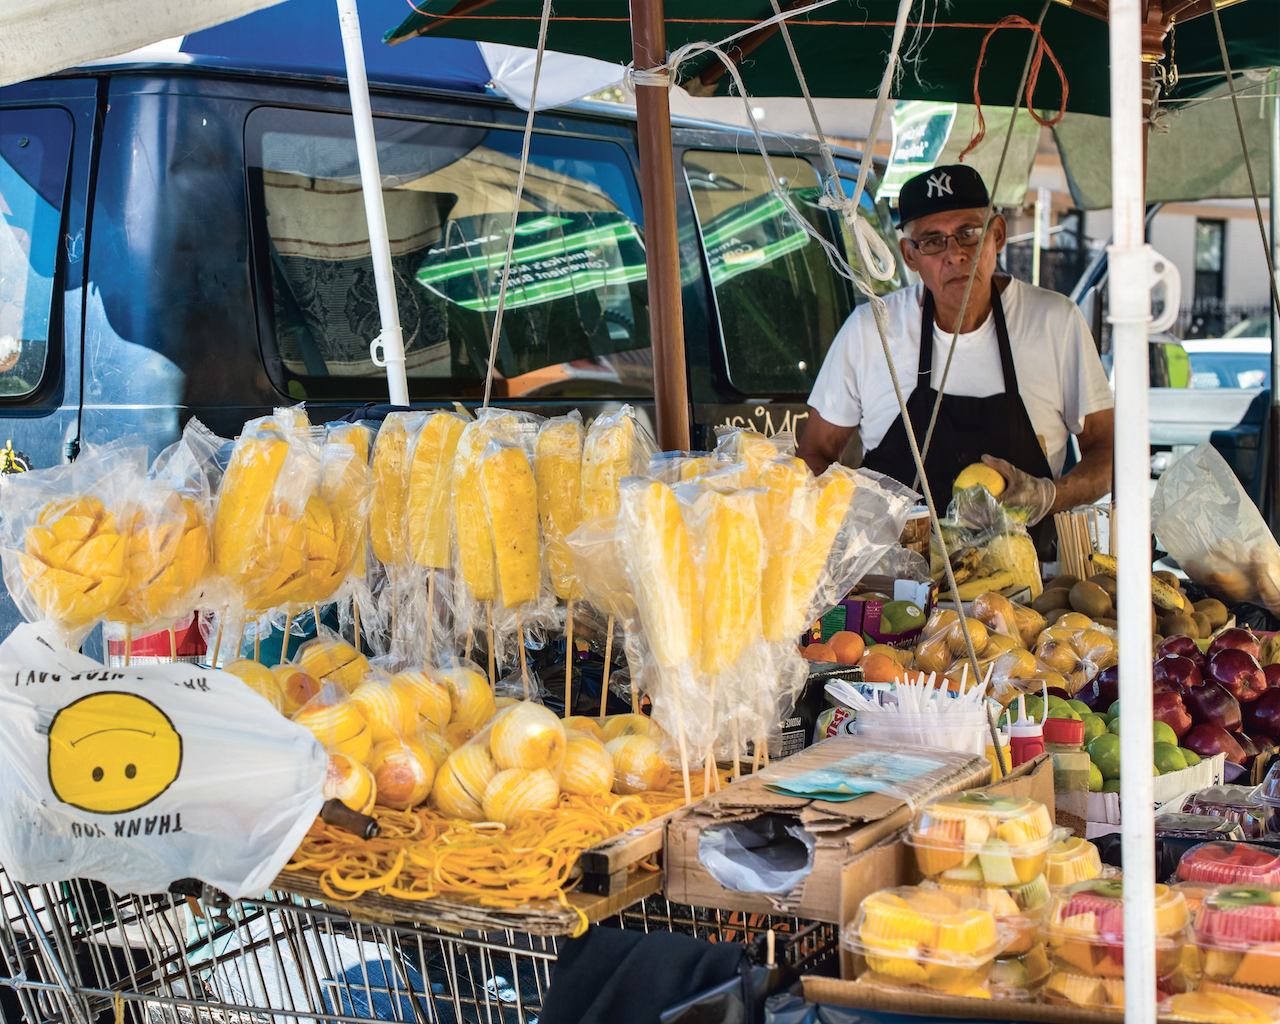 Grab a sliced mango or pineapple stick from one of Broadway's many street vendors.